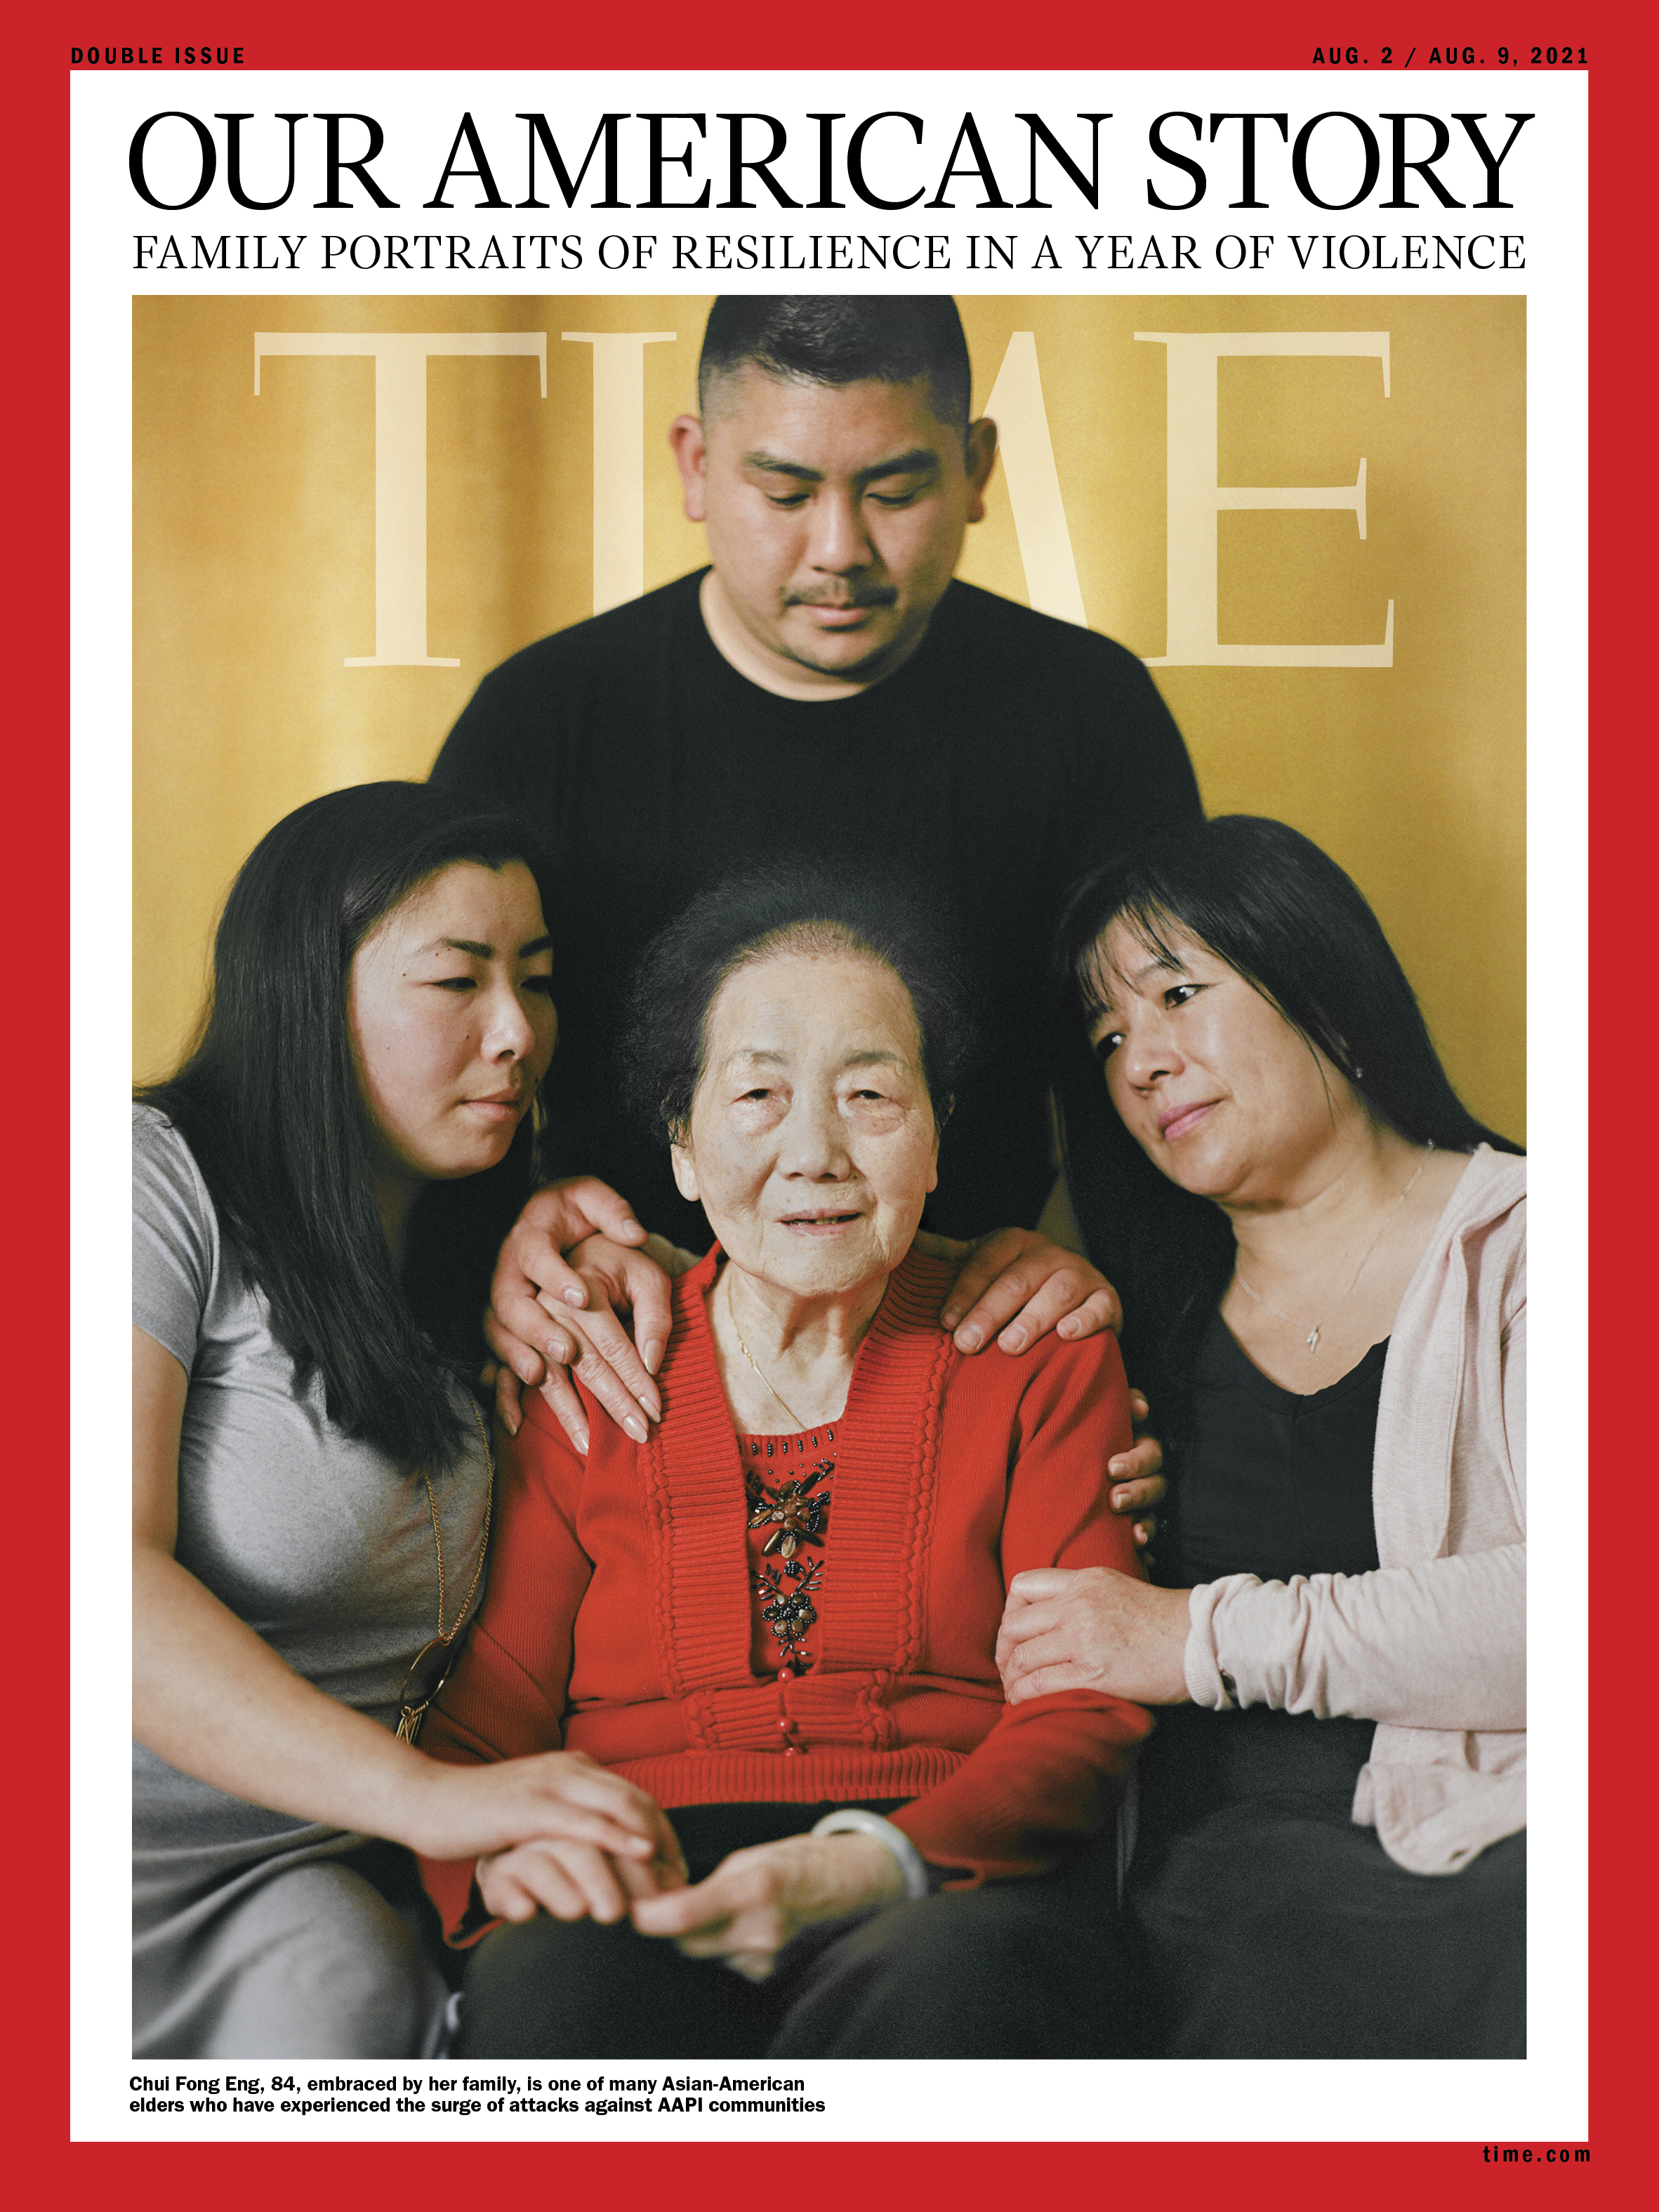 """'I'M A FIGHTER.' Growing up in San Francisco, Victoria Eng, 28, left, and her brother Andrew Eng, 31, top, pictured on June 15 in Pacifica, Calif., learned that respecting their elders was part of their Chinese culture. And they had frequent chances to express that value, as their grandparents picked them up from school nearly every day and cared for them while their parents worked. """"They fed us, they made sure that we were home safe, and they were a huge part of our lives from the start,"""" says Victoria. When violence against Asian-American elders rose drastically during the pandemic, Victoria was appalled—and when her own grandmother was attacked, she felt helpless. On May 4, shortly after Chui Fong Eng, center, received her COVID-19 vaccination, the 84-year-old ventured into Chinatown for the first time in over a year to buy groceries. While waiting at a bus stop, she was stabbed through her right arm with a large blade that then entered her chest and punctured a lung. Another Asian-American senior at the bus stop was also stabbed. The Engs clung to one another as their matriarch underwent surgery. """"I cried, and I cried, and I cried,"""" says Chui Fong's daughter-in-law Linda Lim, right. """"I couldn't believe that she survived this."""" Less surprised was Chui Fong, who, as the eldest of her seven siblings, has always been tough. After arriving in the U.S. from Hong Kong in 1963, she sewed clothes in a factory until she was able to sponsor her parents and siblings. """"I'm a fighter,"""" she says. Linda, 56, says the attack brought the family closer, after years of distance following her divorce from Victoria and Andrew's father. """"It made us realize how important family is,"""" she says."""